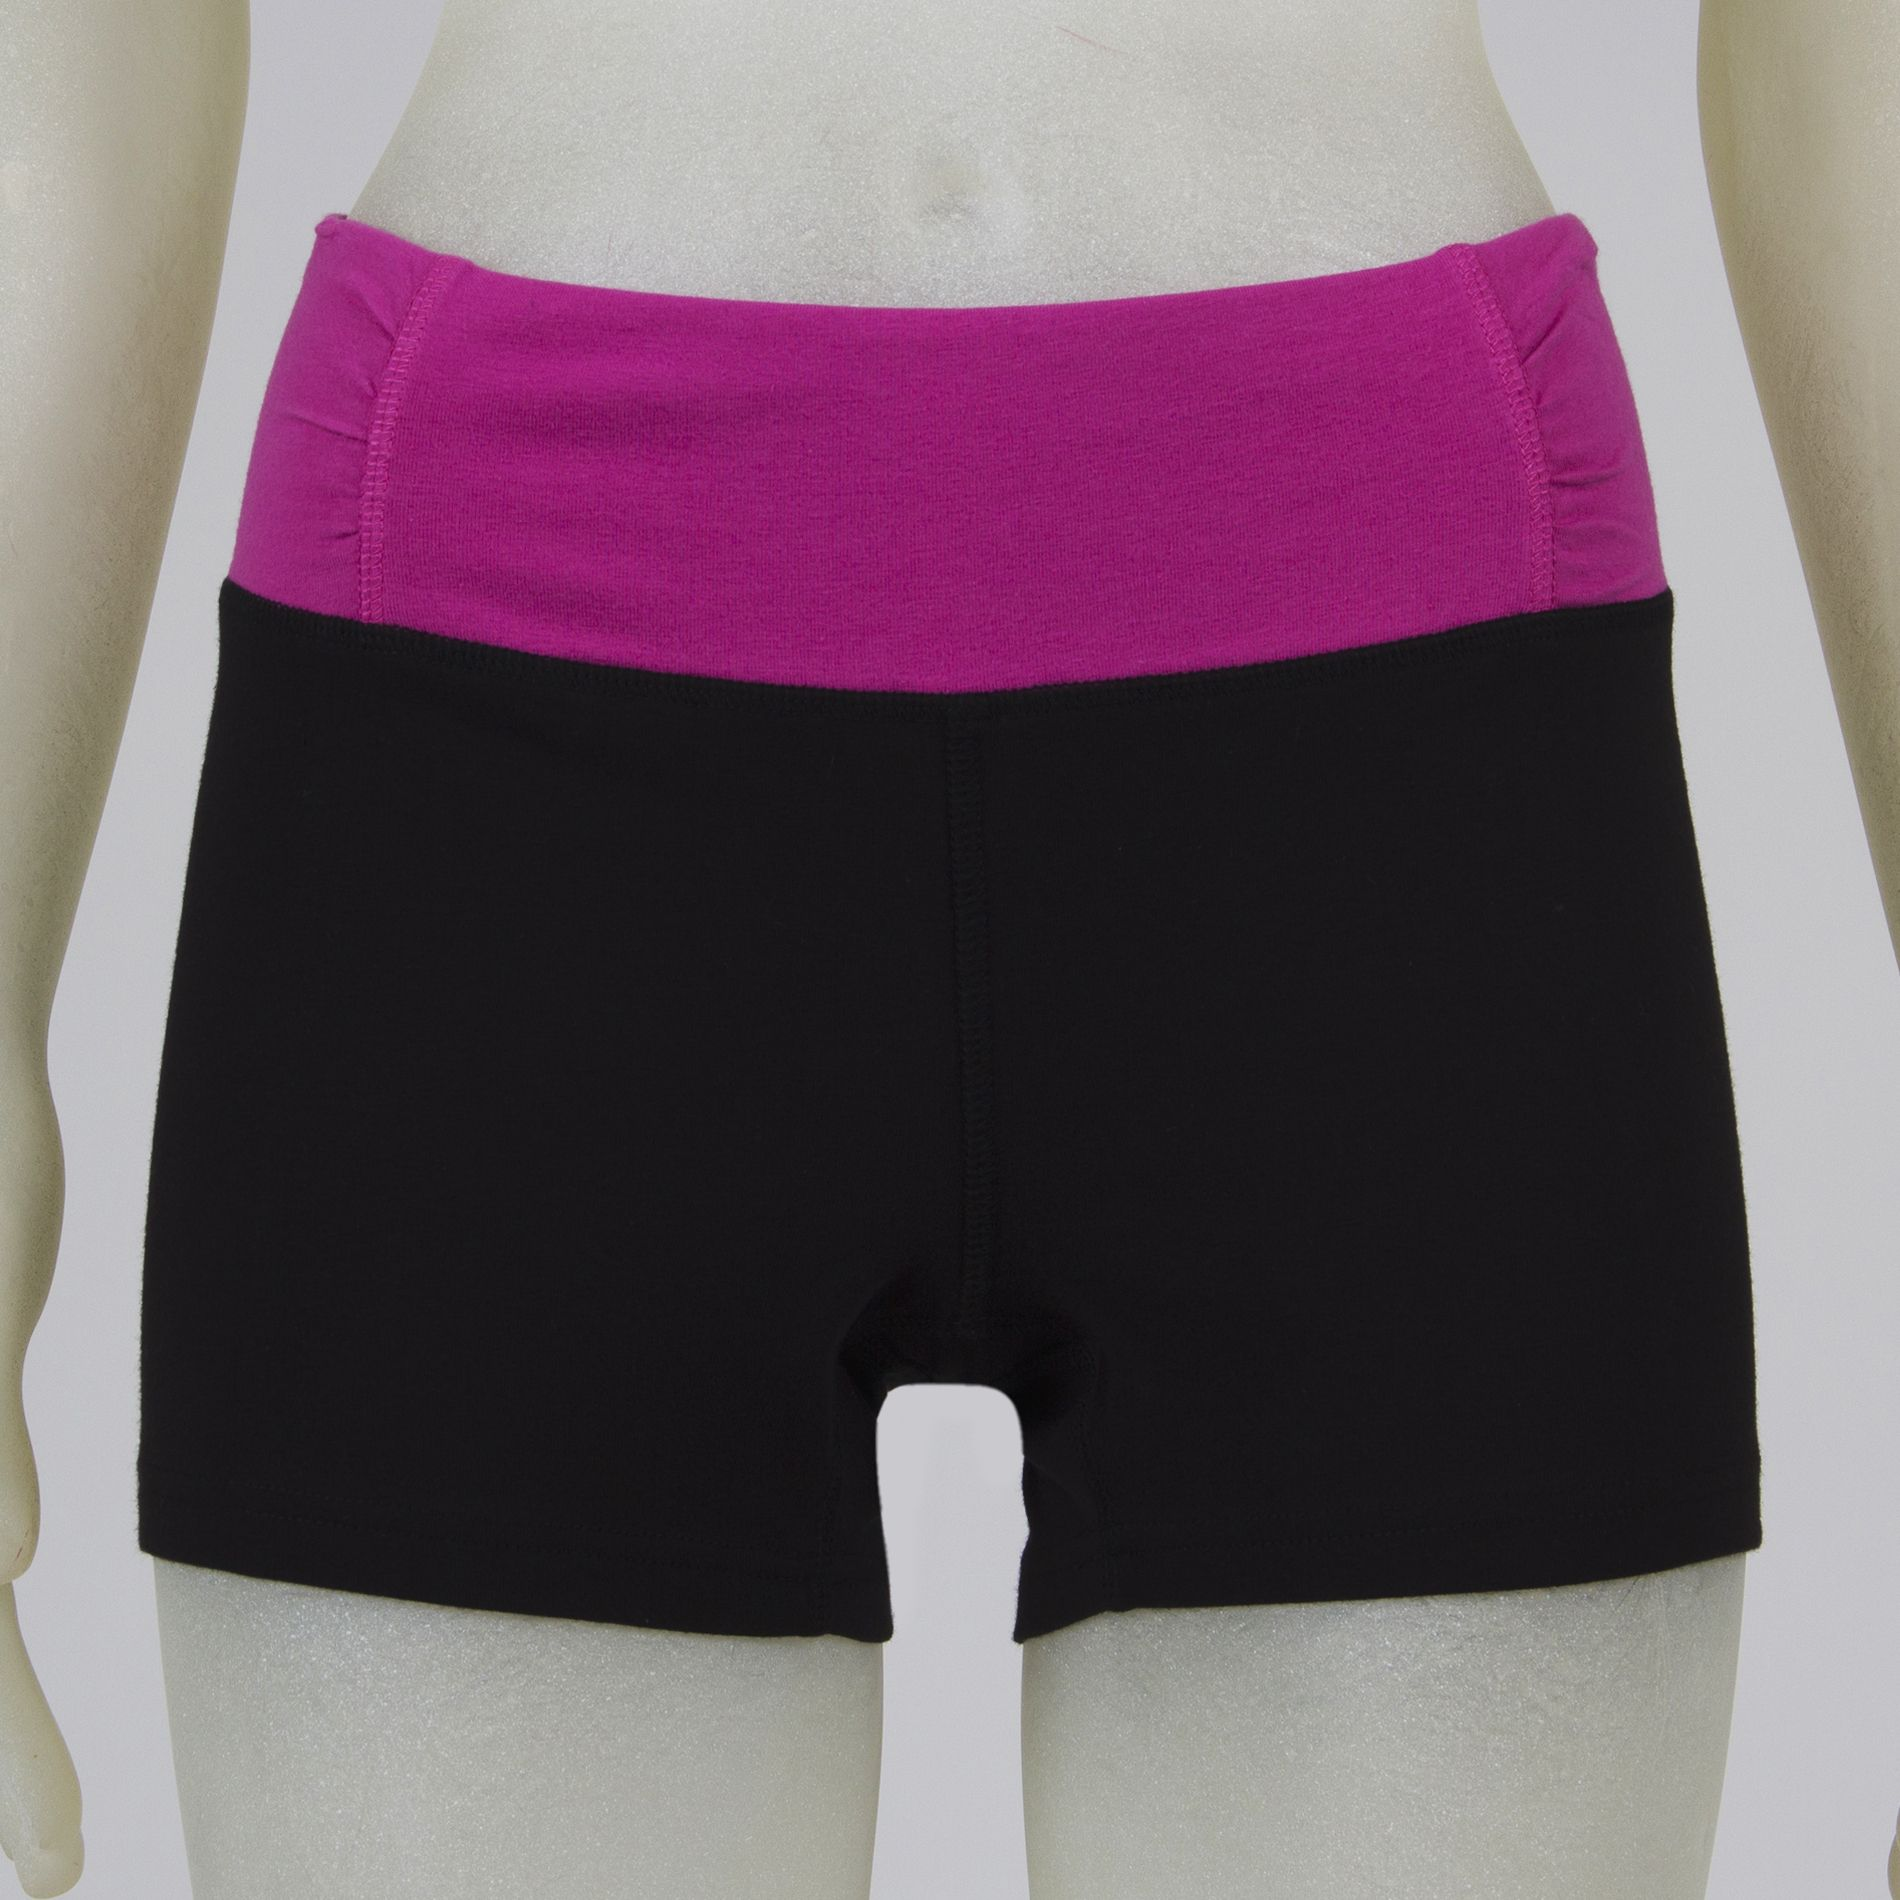 Everlast® Women's Urban Mini Bike Shorts at Sears.com